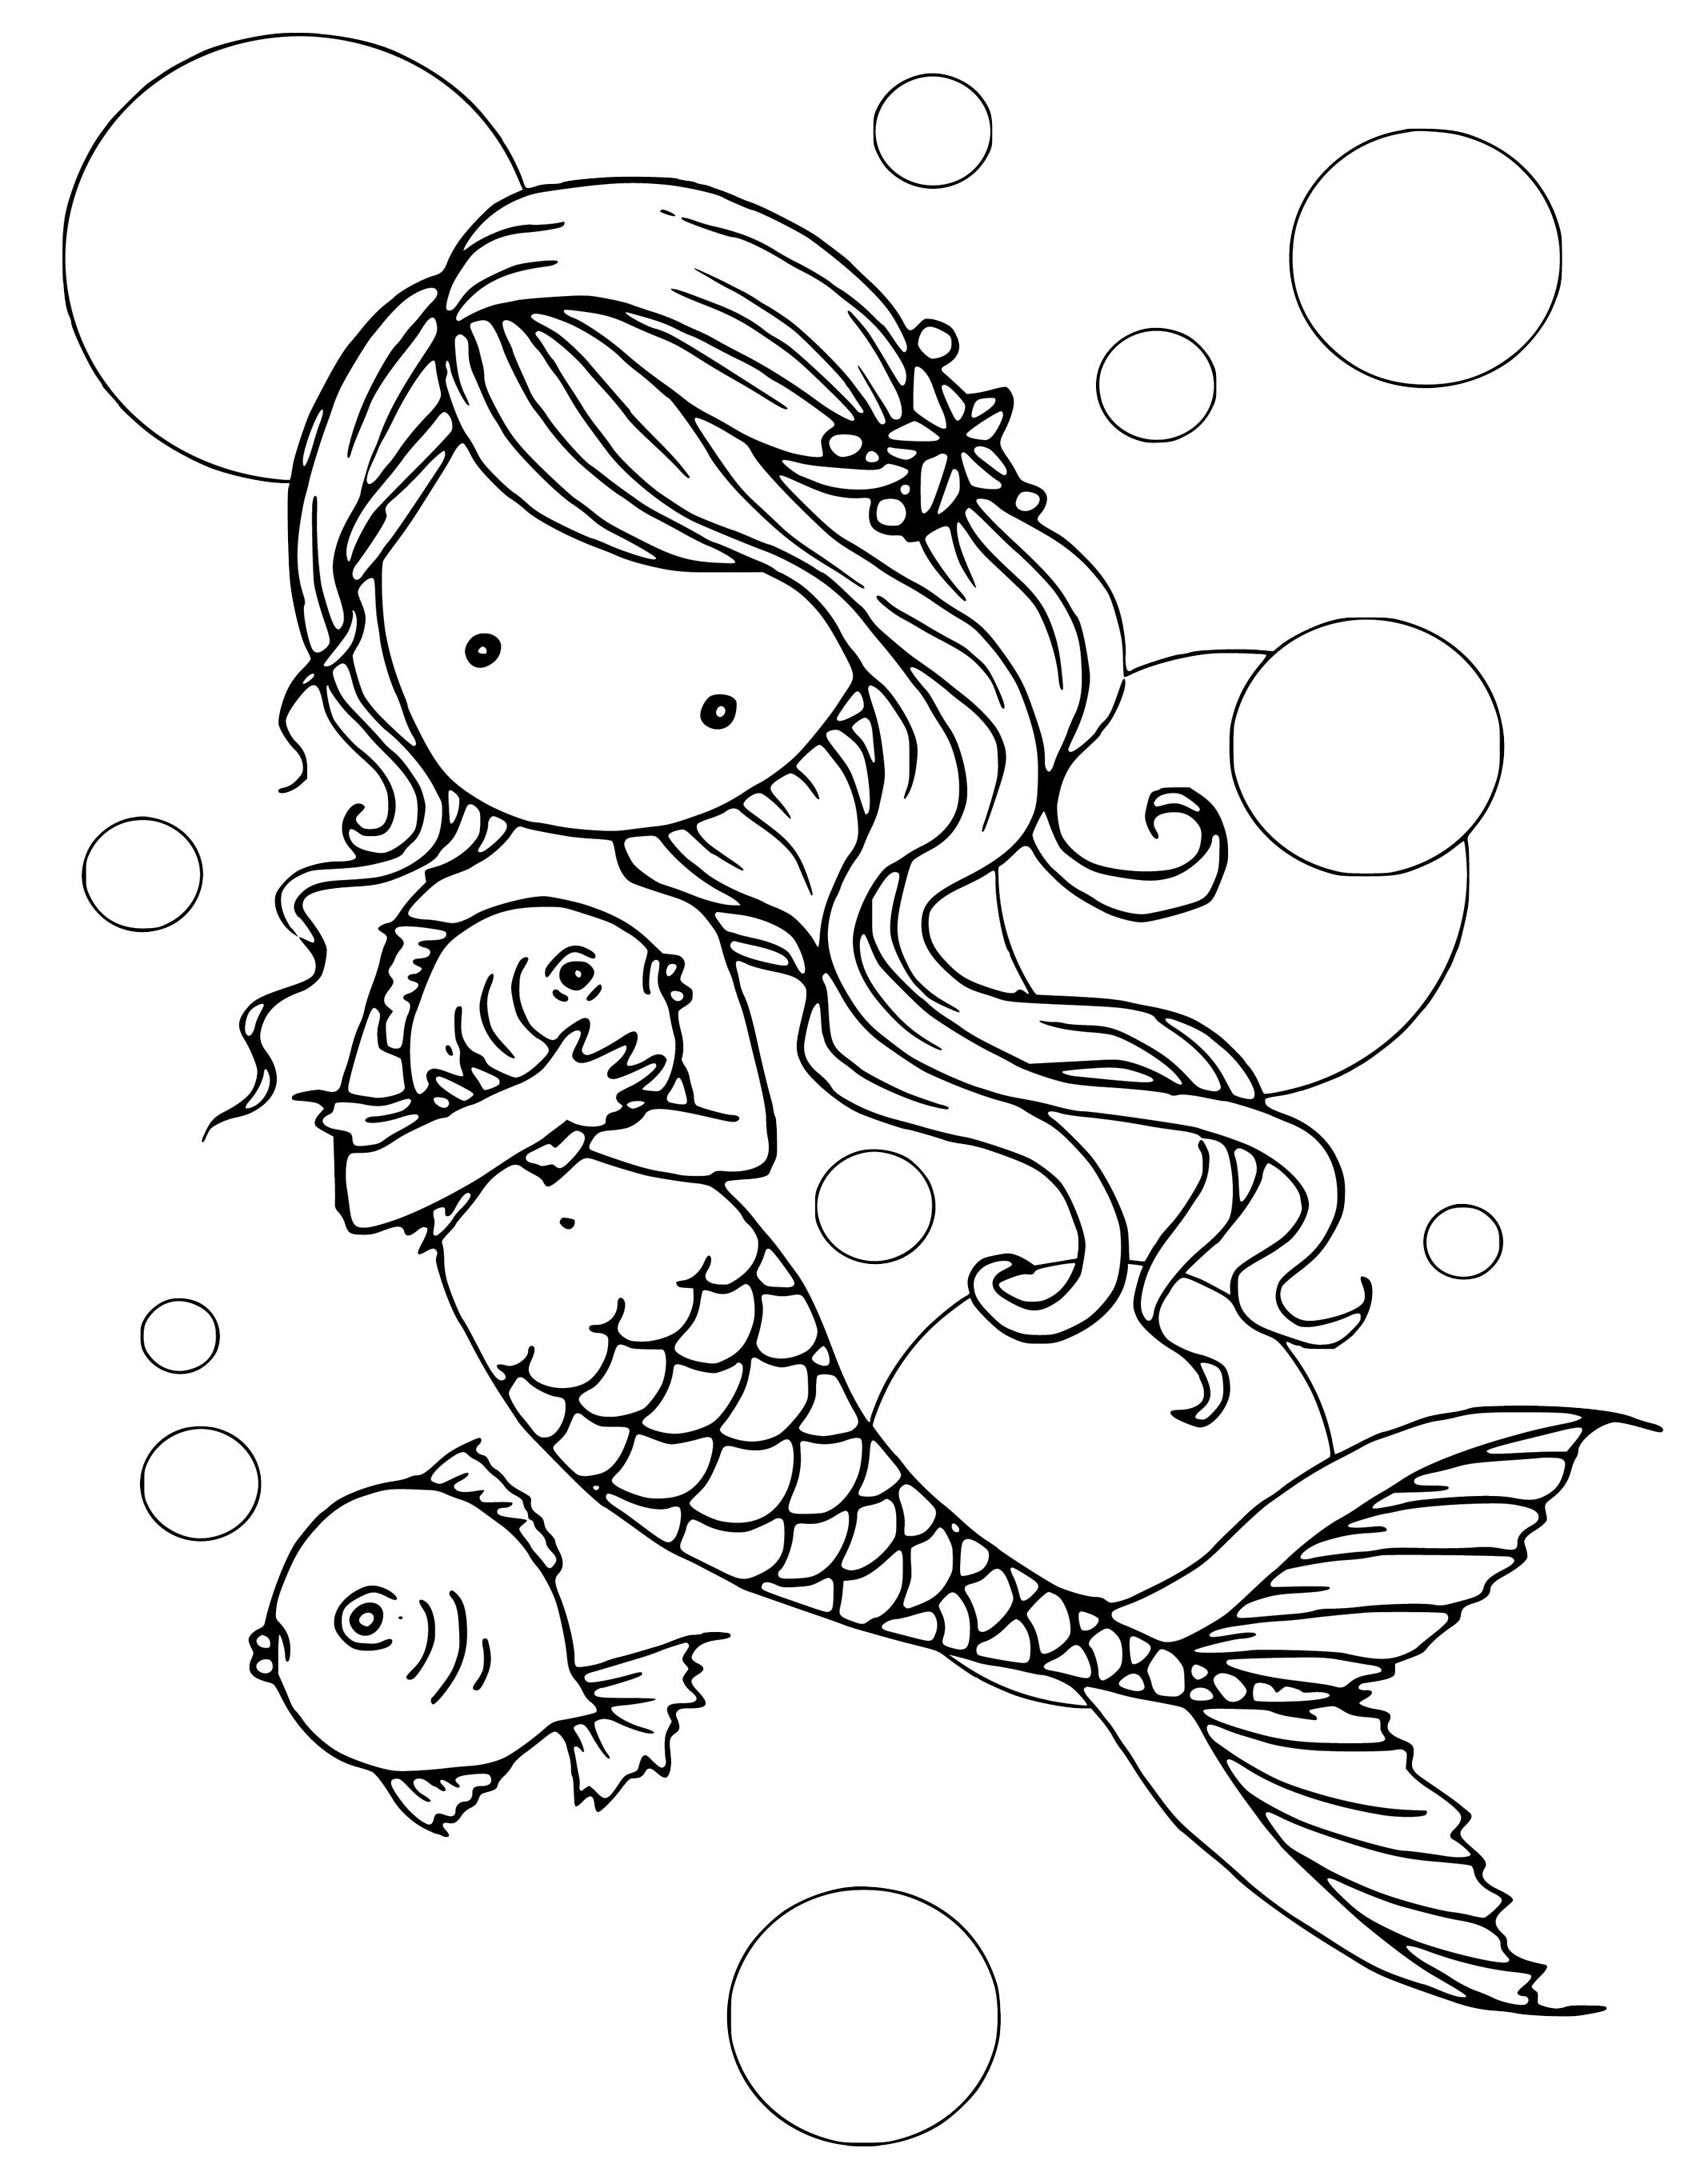 Free Printable Coloring Pages For Adults Mermaids - doraemon